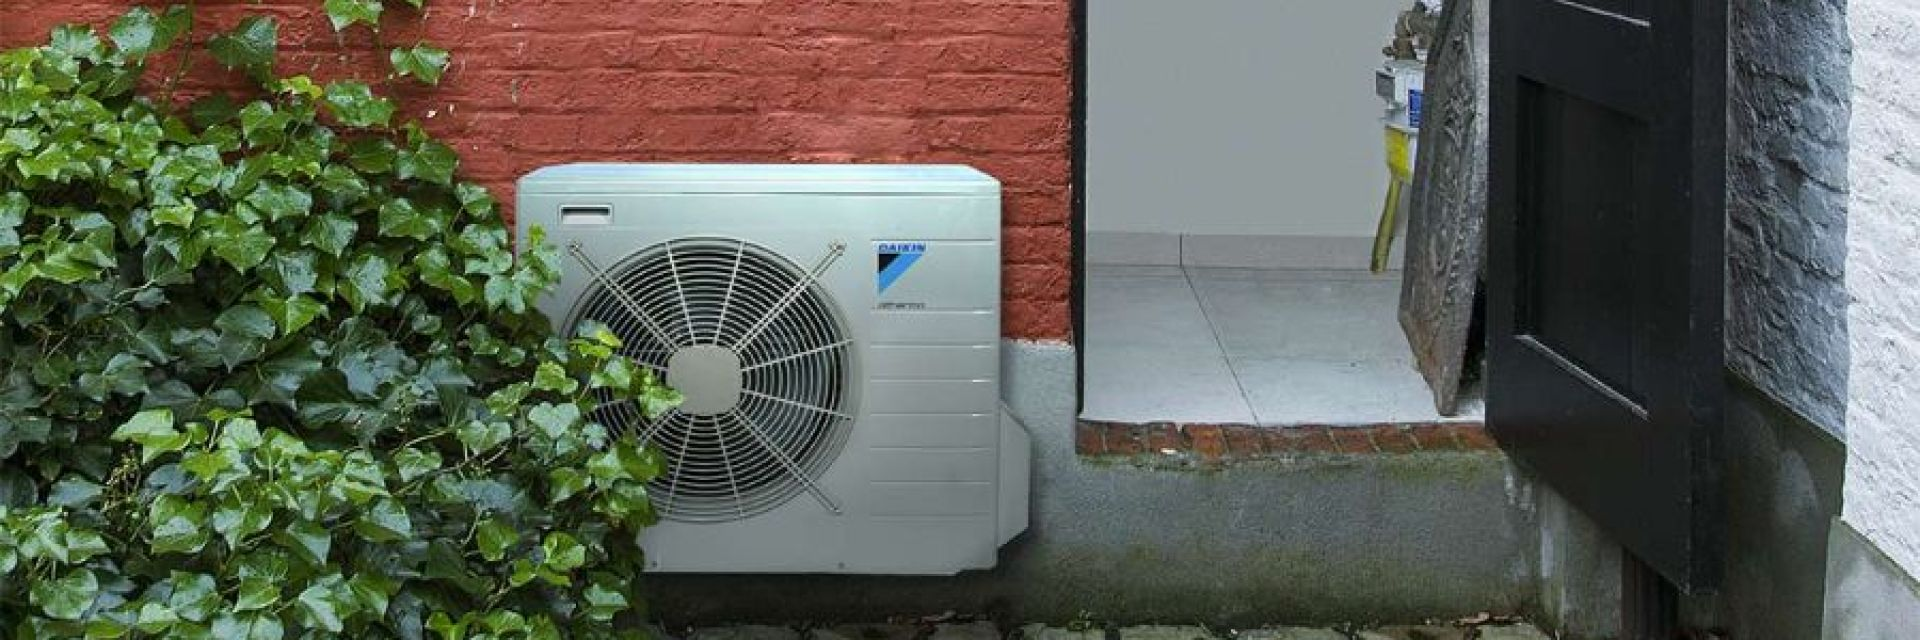 EnTranCe tests hybrid heat pumps for Consumers association